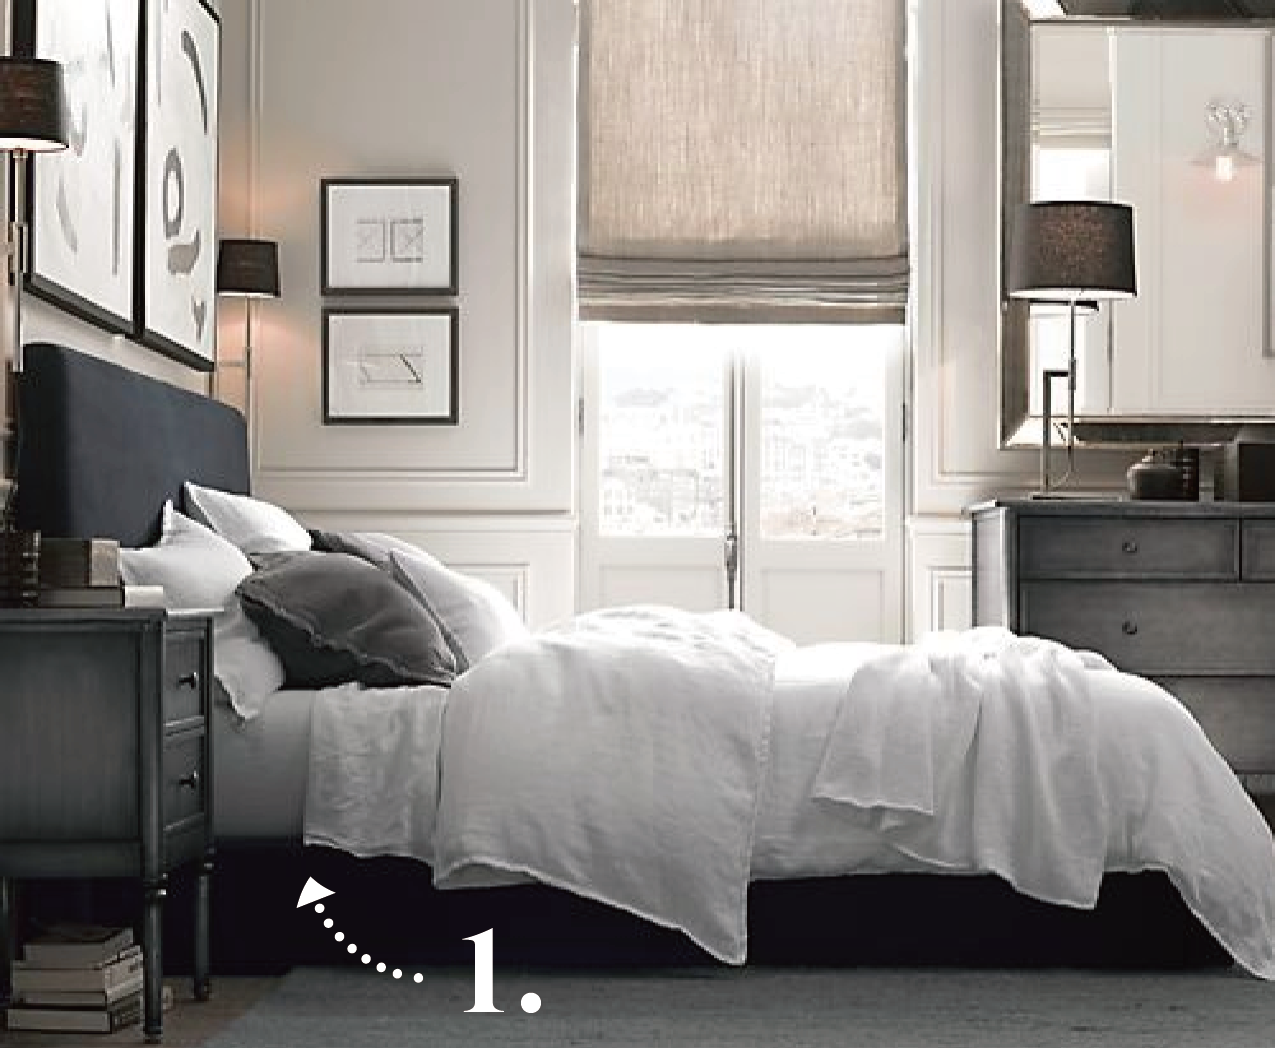 Restoration Hardware Catalogue Bedroom Interiors Blog